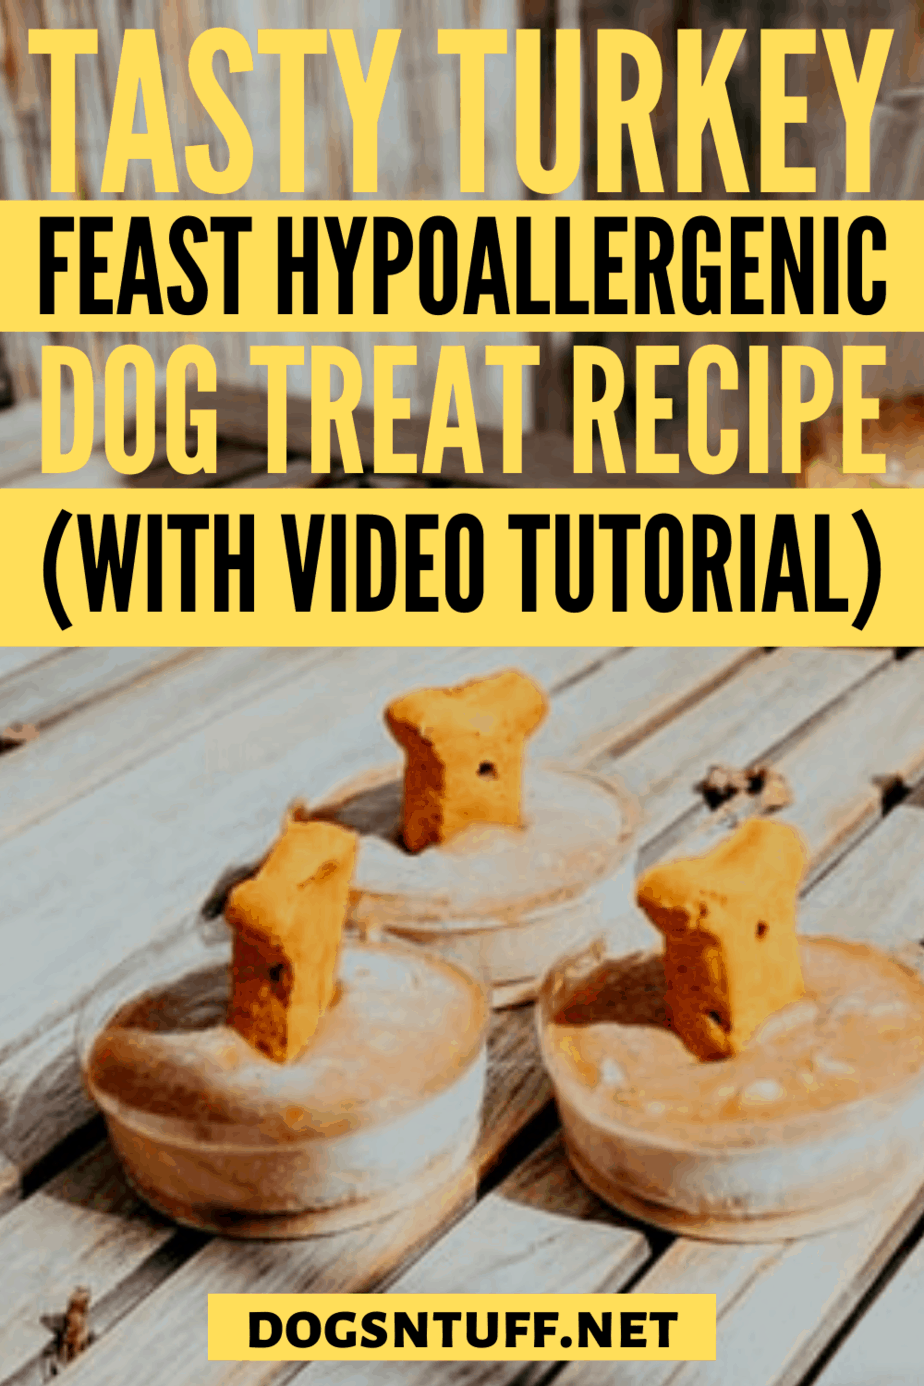 Tips and Tricks on How to Make Hypoallergenic Turkey Dog Treats